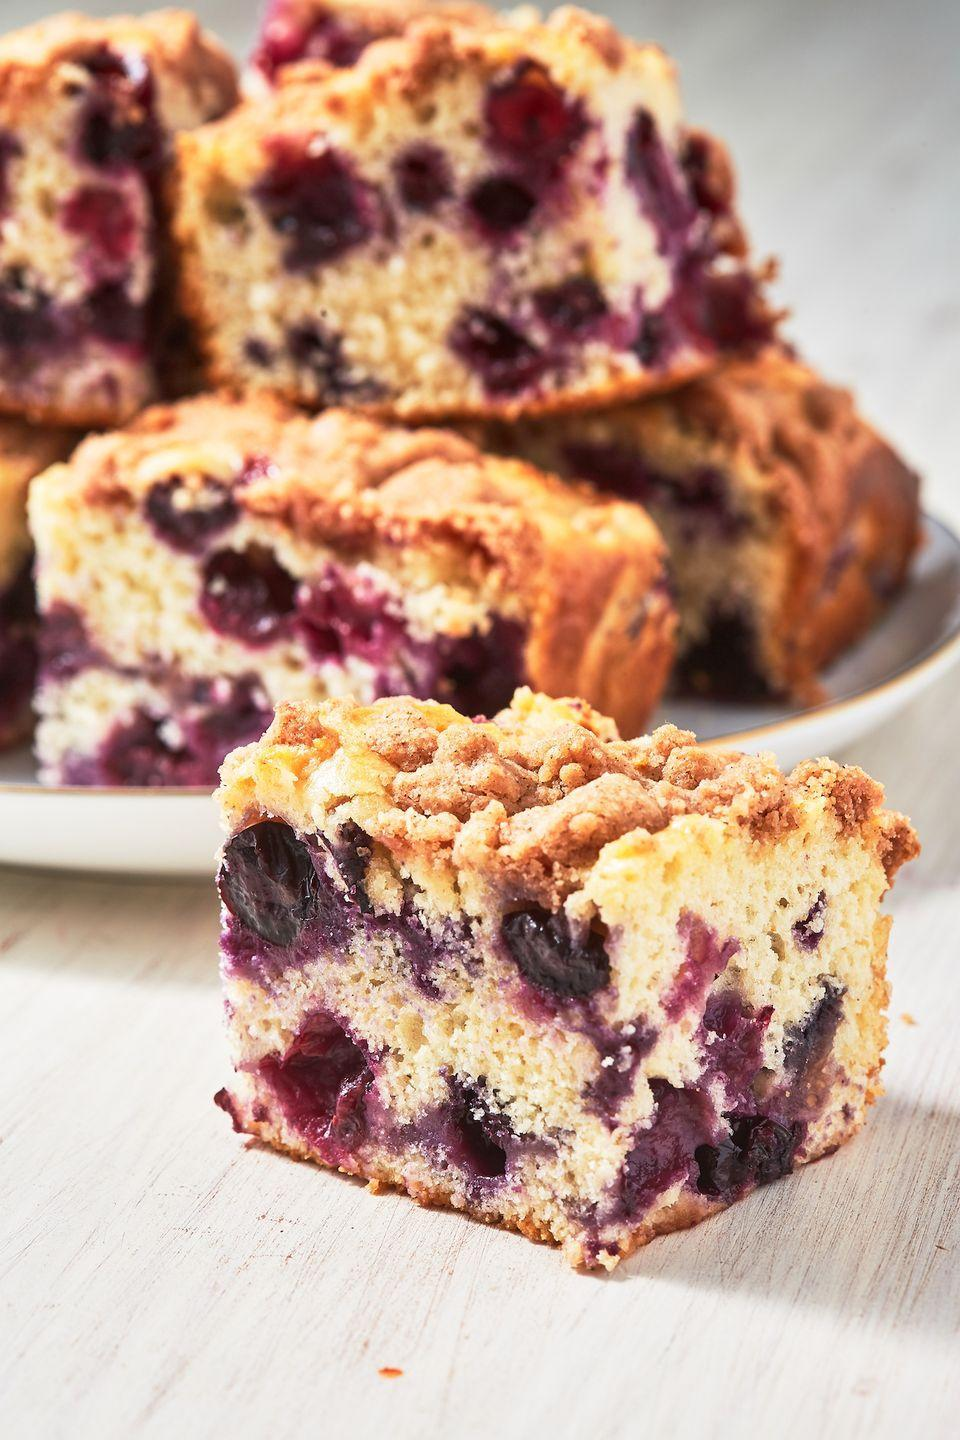 """<p>My breakfast, dessert, afternoon snack, etc. </p><p>Get the recipe from <a href=""""https://www.delish.com/cooking/recipe-ideas/a27920478/blueberry-buckle-recipe/"""" rel=""""nofollow noopener"""" target=""""_blank"""" data-ylk=""""slk:Delish"""" class=""""link rapid-noclick-resp"""">Delish</a>.</p>"""